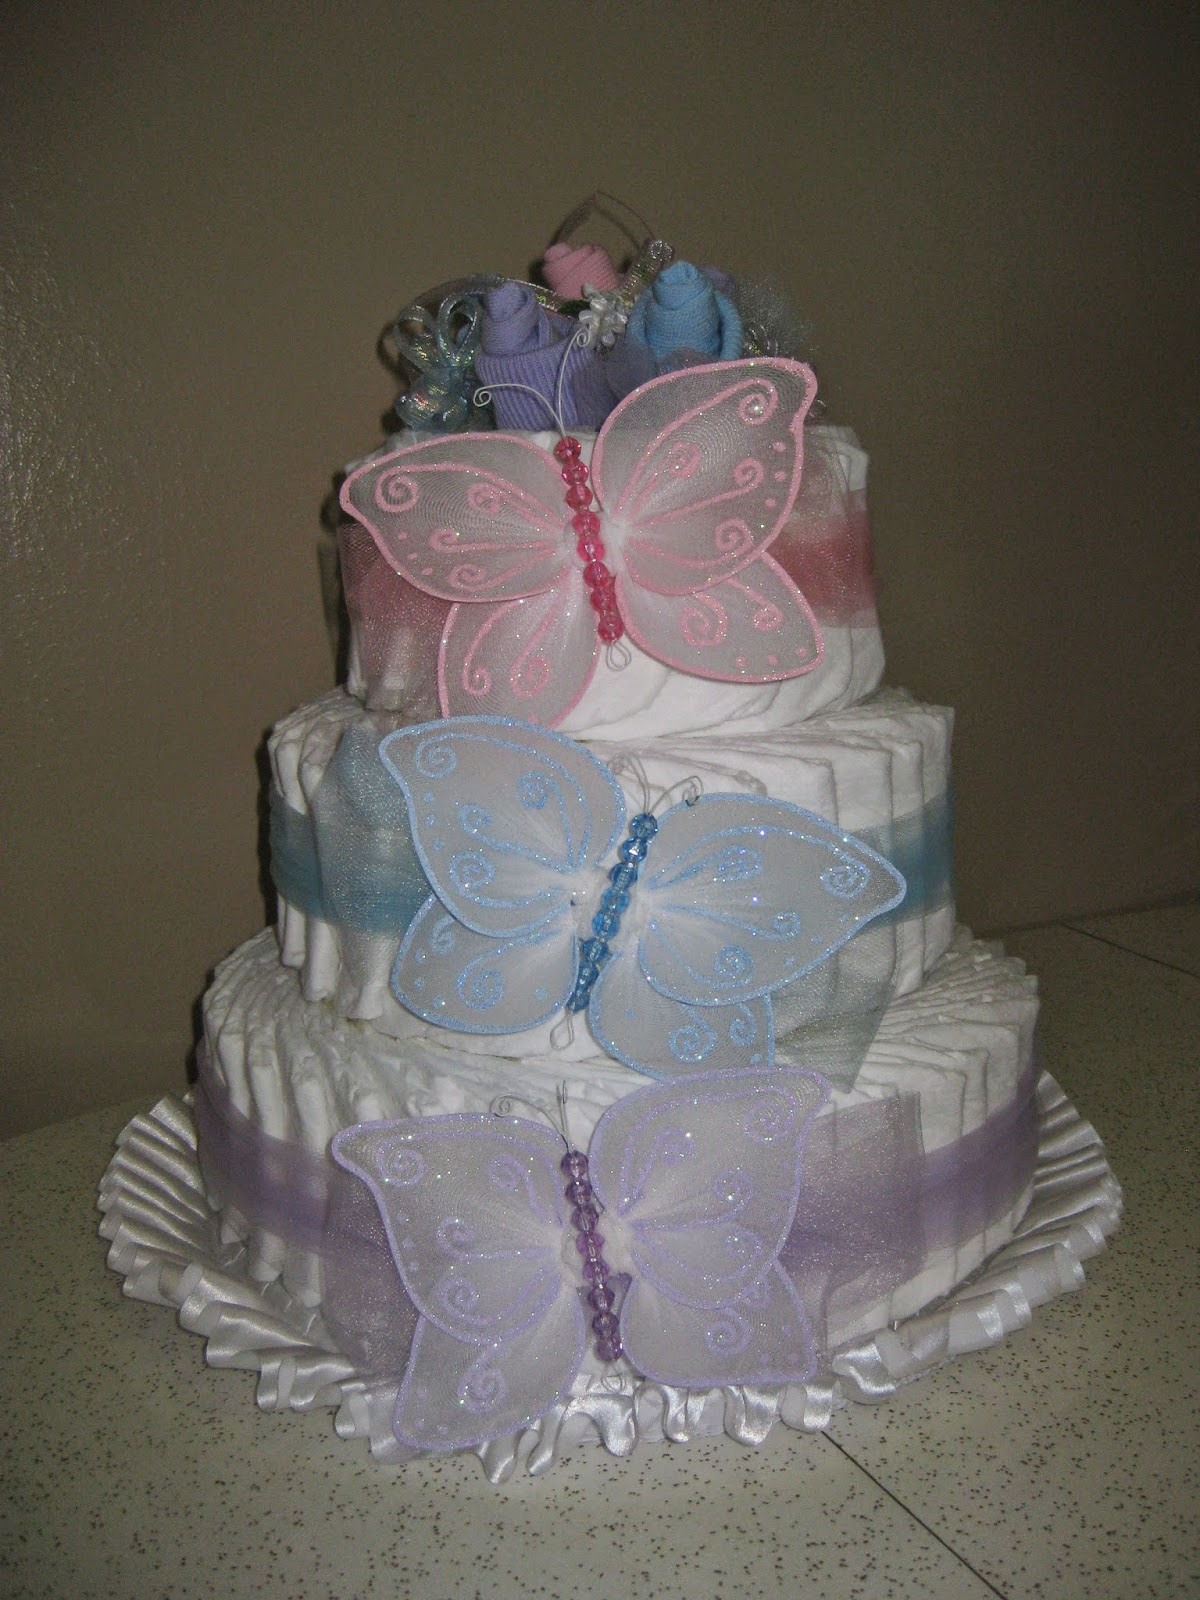 For My Own Baby Shower, We Used A Pastel Butterflies Theme And I Made This  Butterfly Diaper Cake! I Used Over 100 Size 1 Diapers, Tulle, Baby Socks,  ...